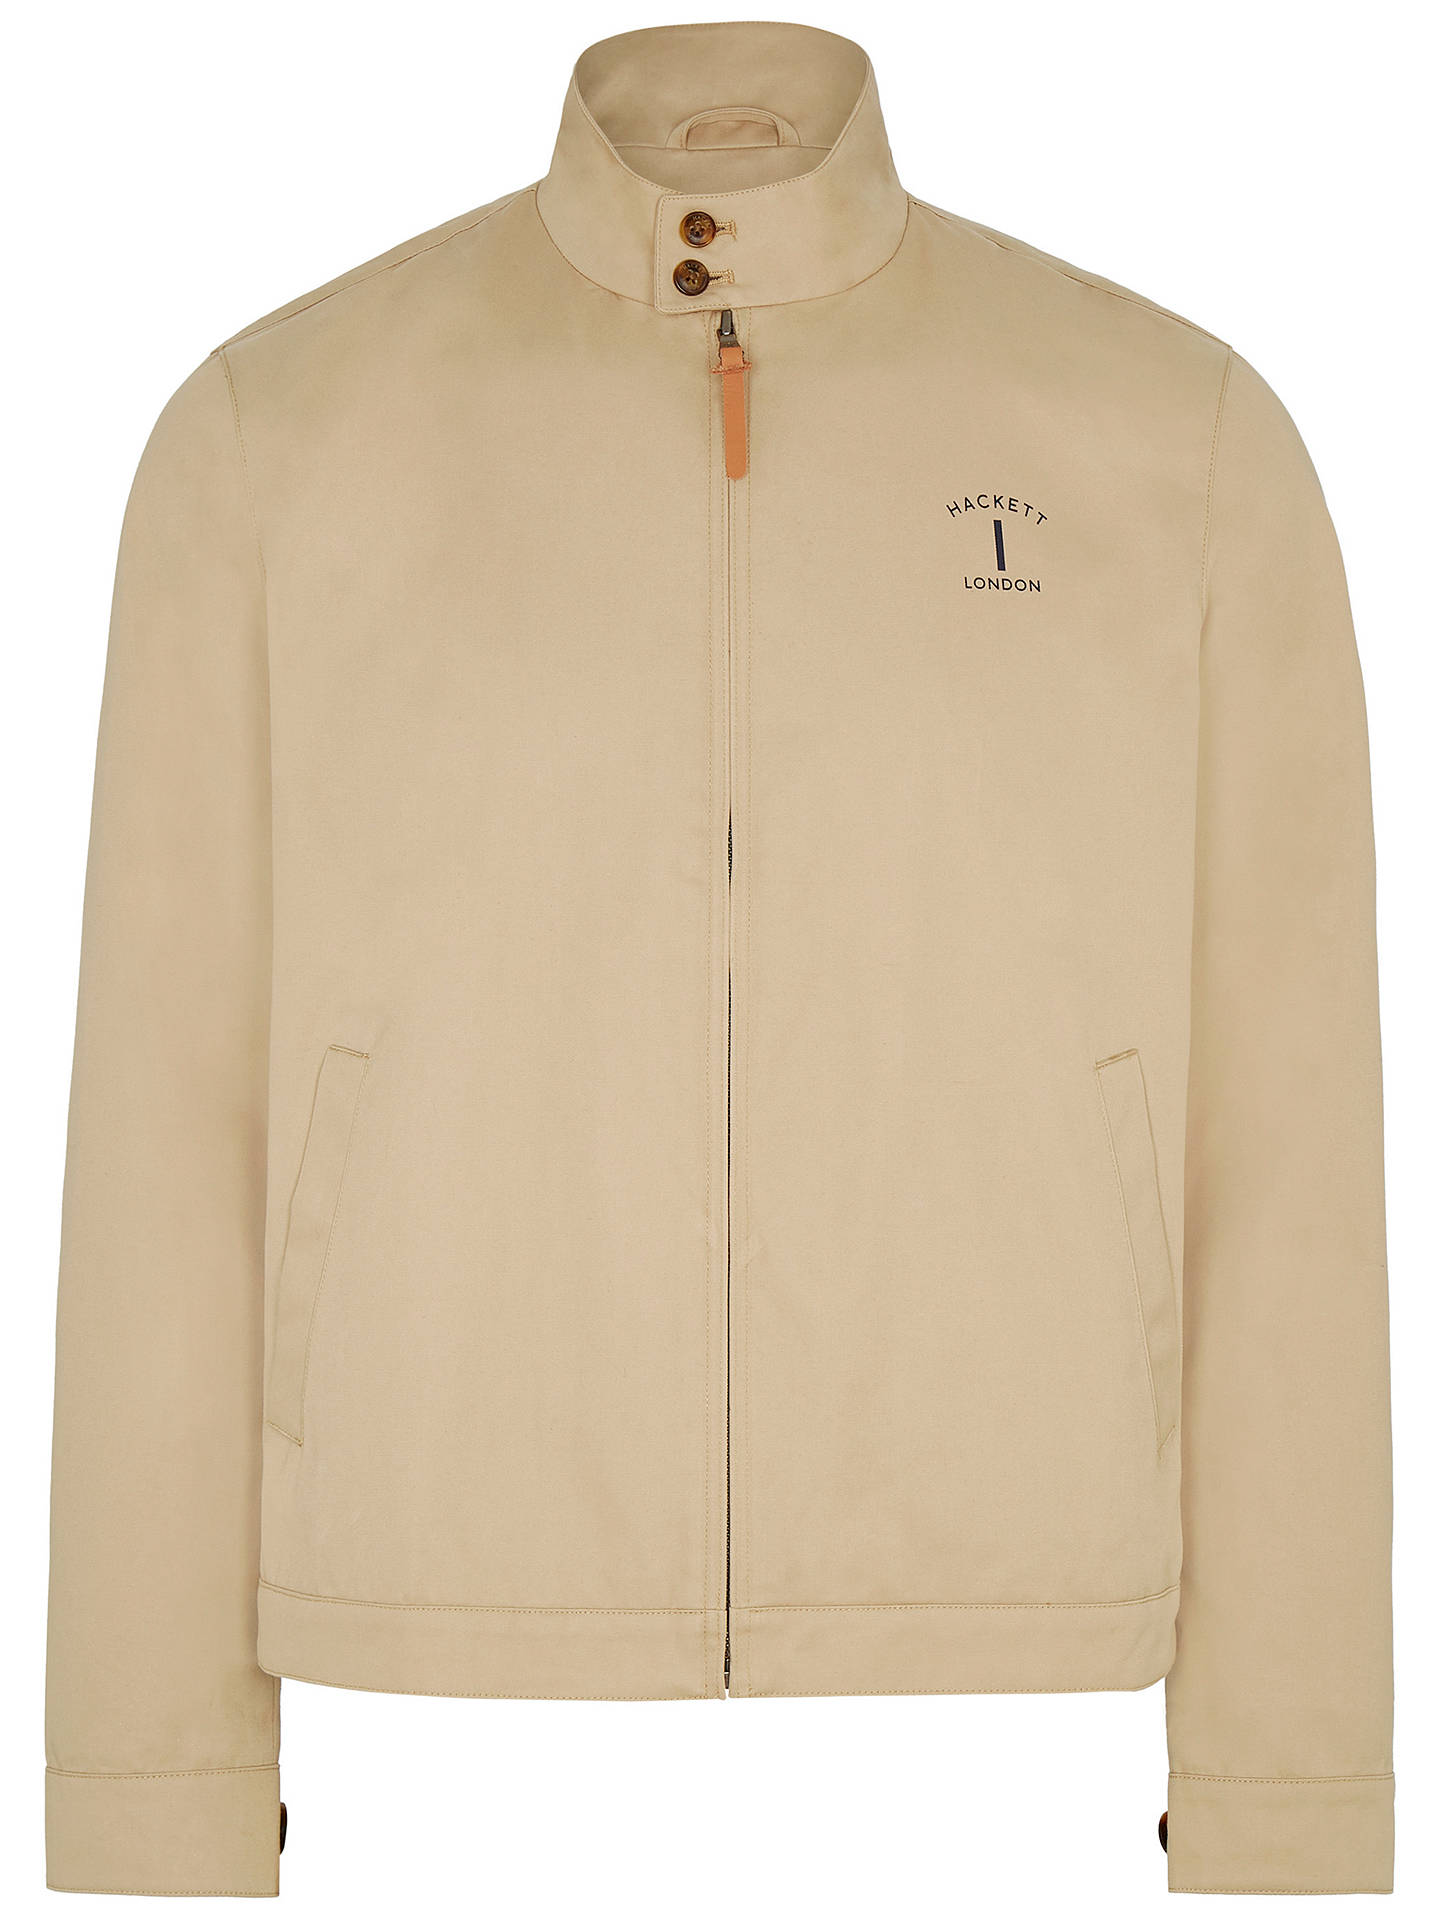 Buy Hackett London Mr Classic Harrington Jacket, Sand, S Online at johnlewis.com